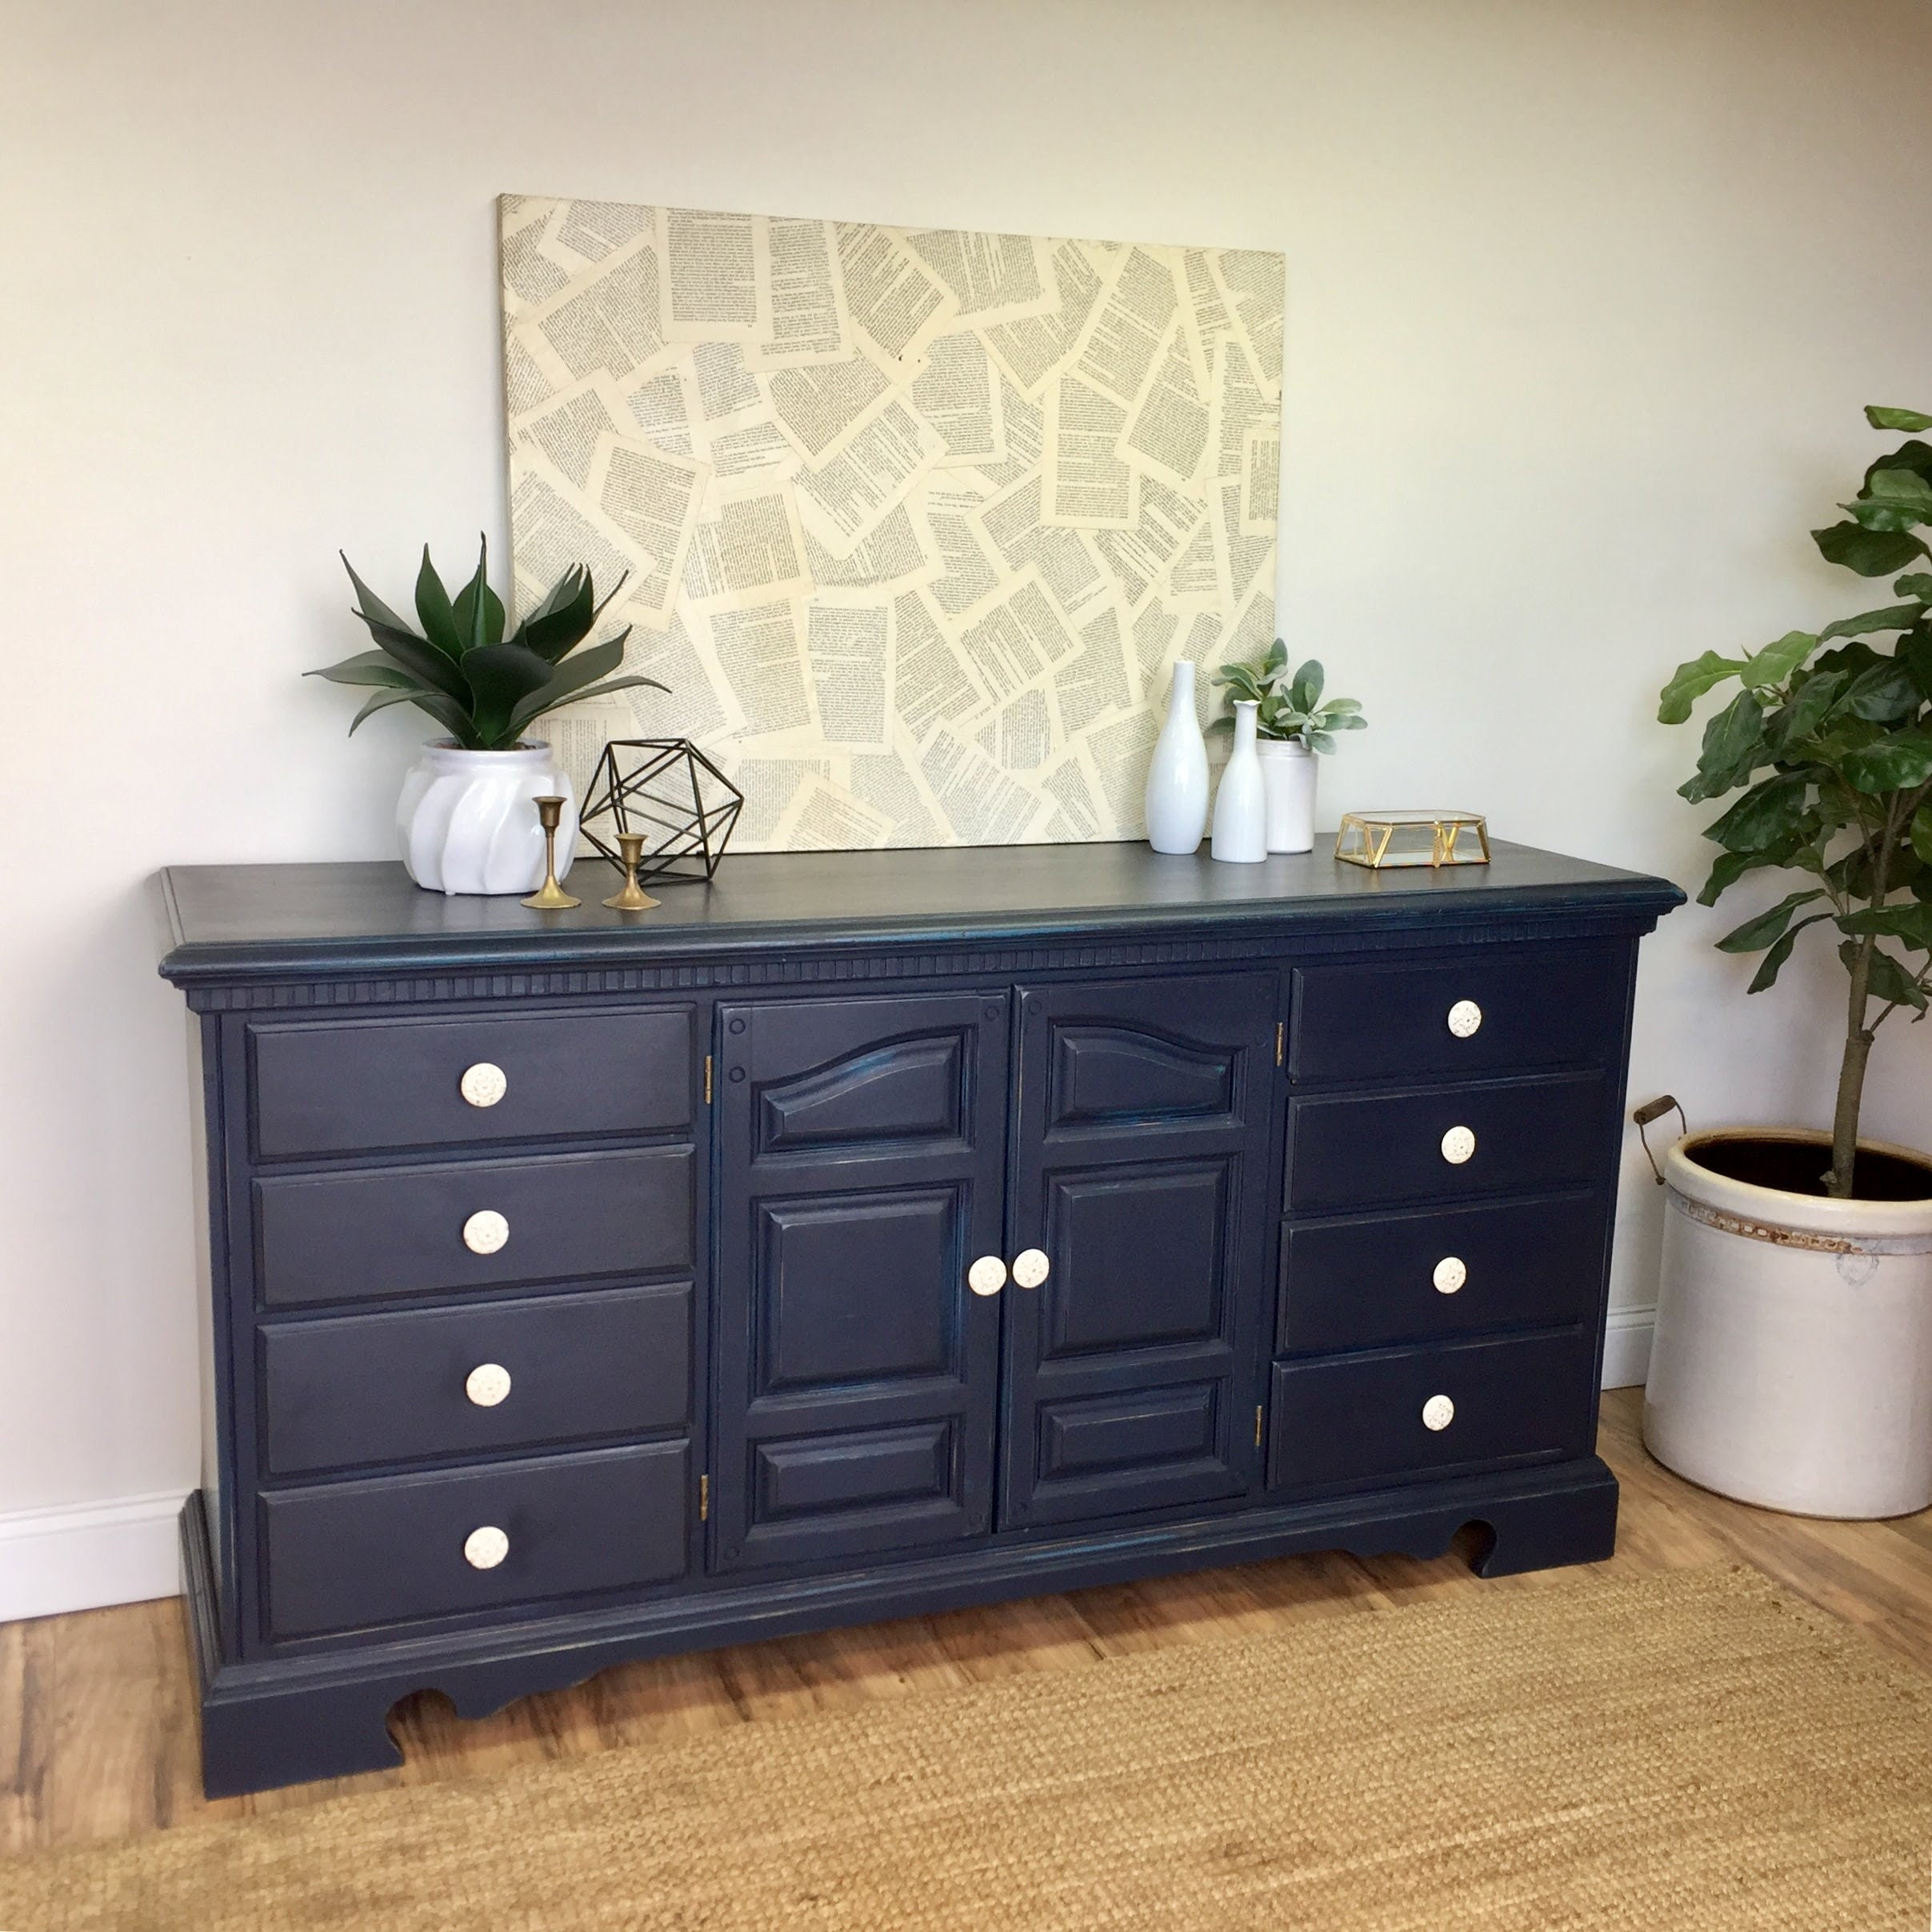 fisherman blue and wife s all img new after navy paint furniture distressed knobs dresser